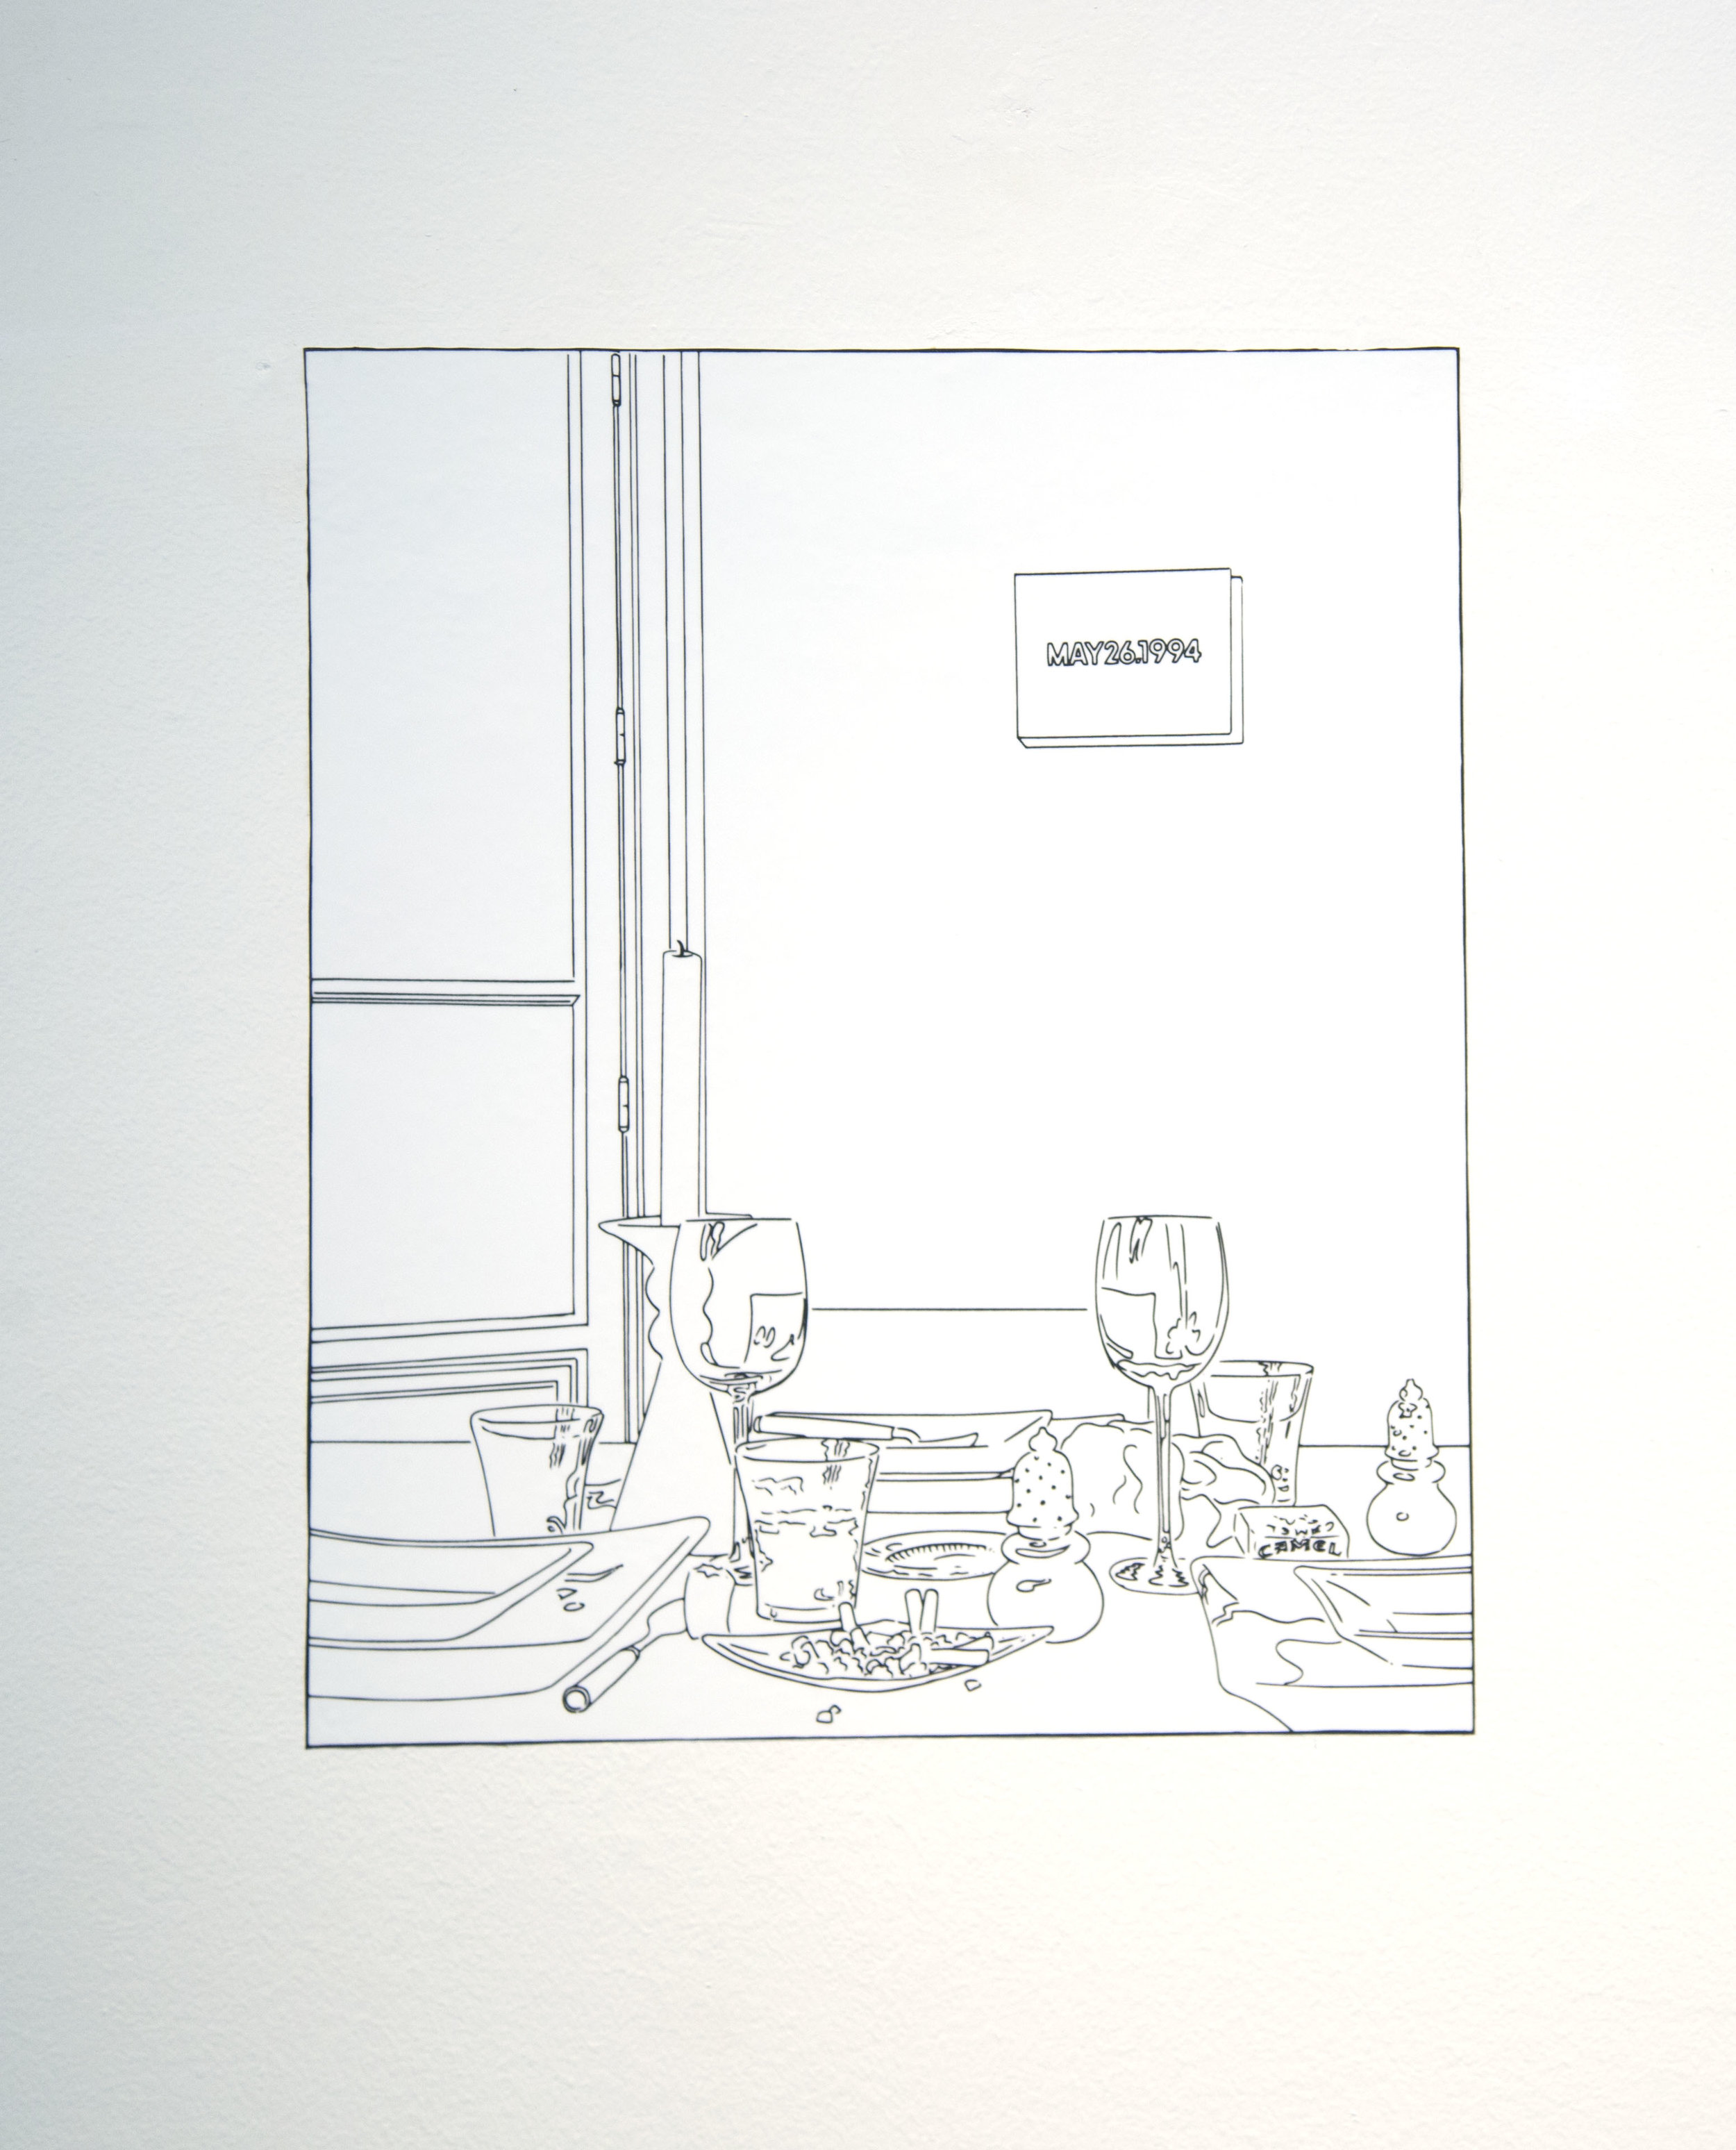 Louise Lawler   Still Life (Candle) (traced),  2003/2012, Adhesive wall material, dimensions variable (this version: 13 x 10 3/4 inches), Edition of 10, 2 APs